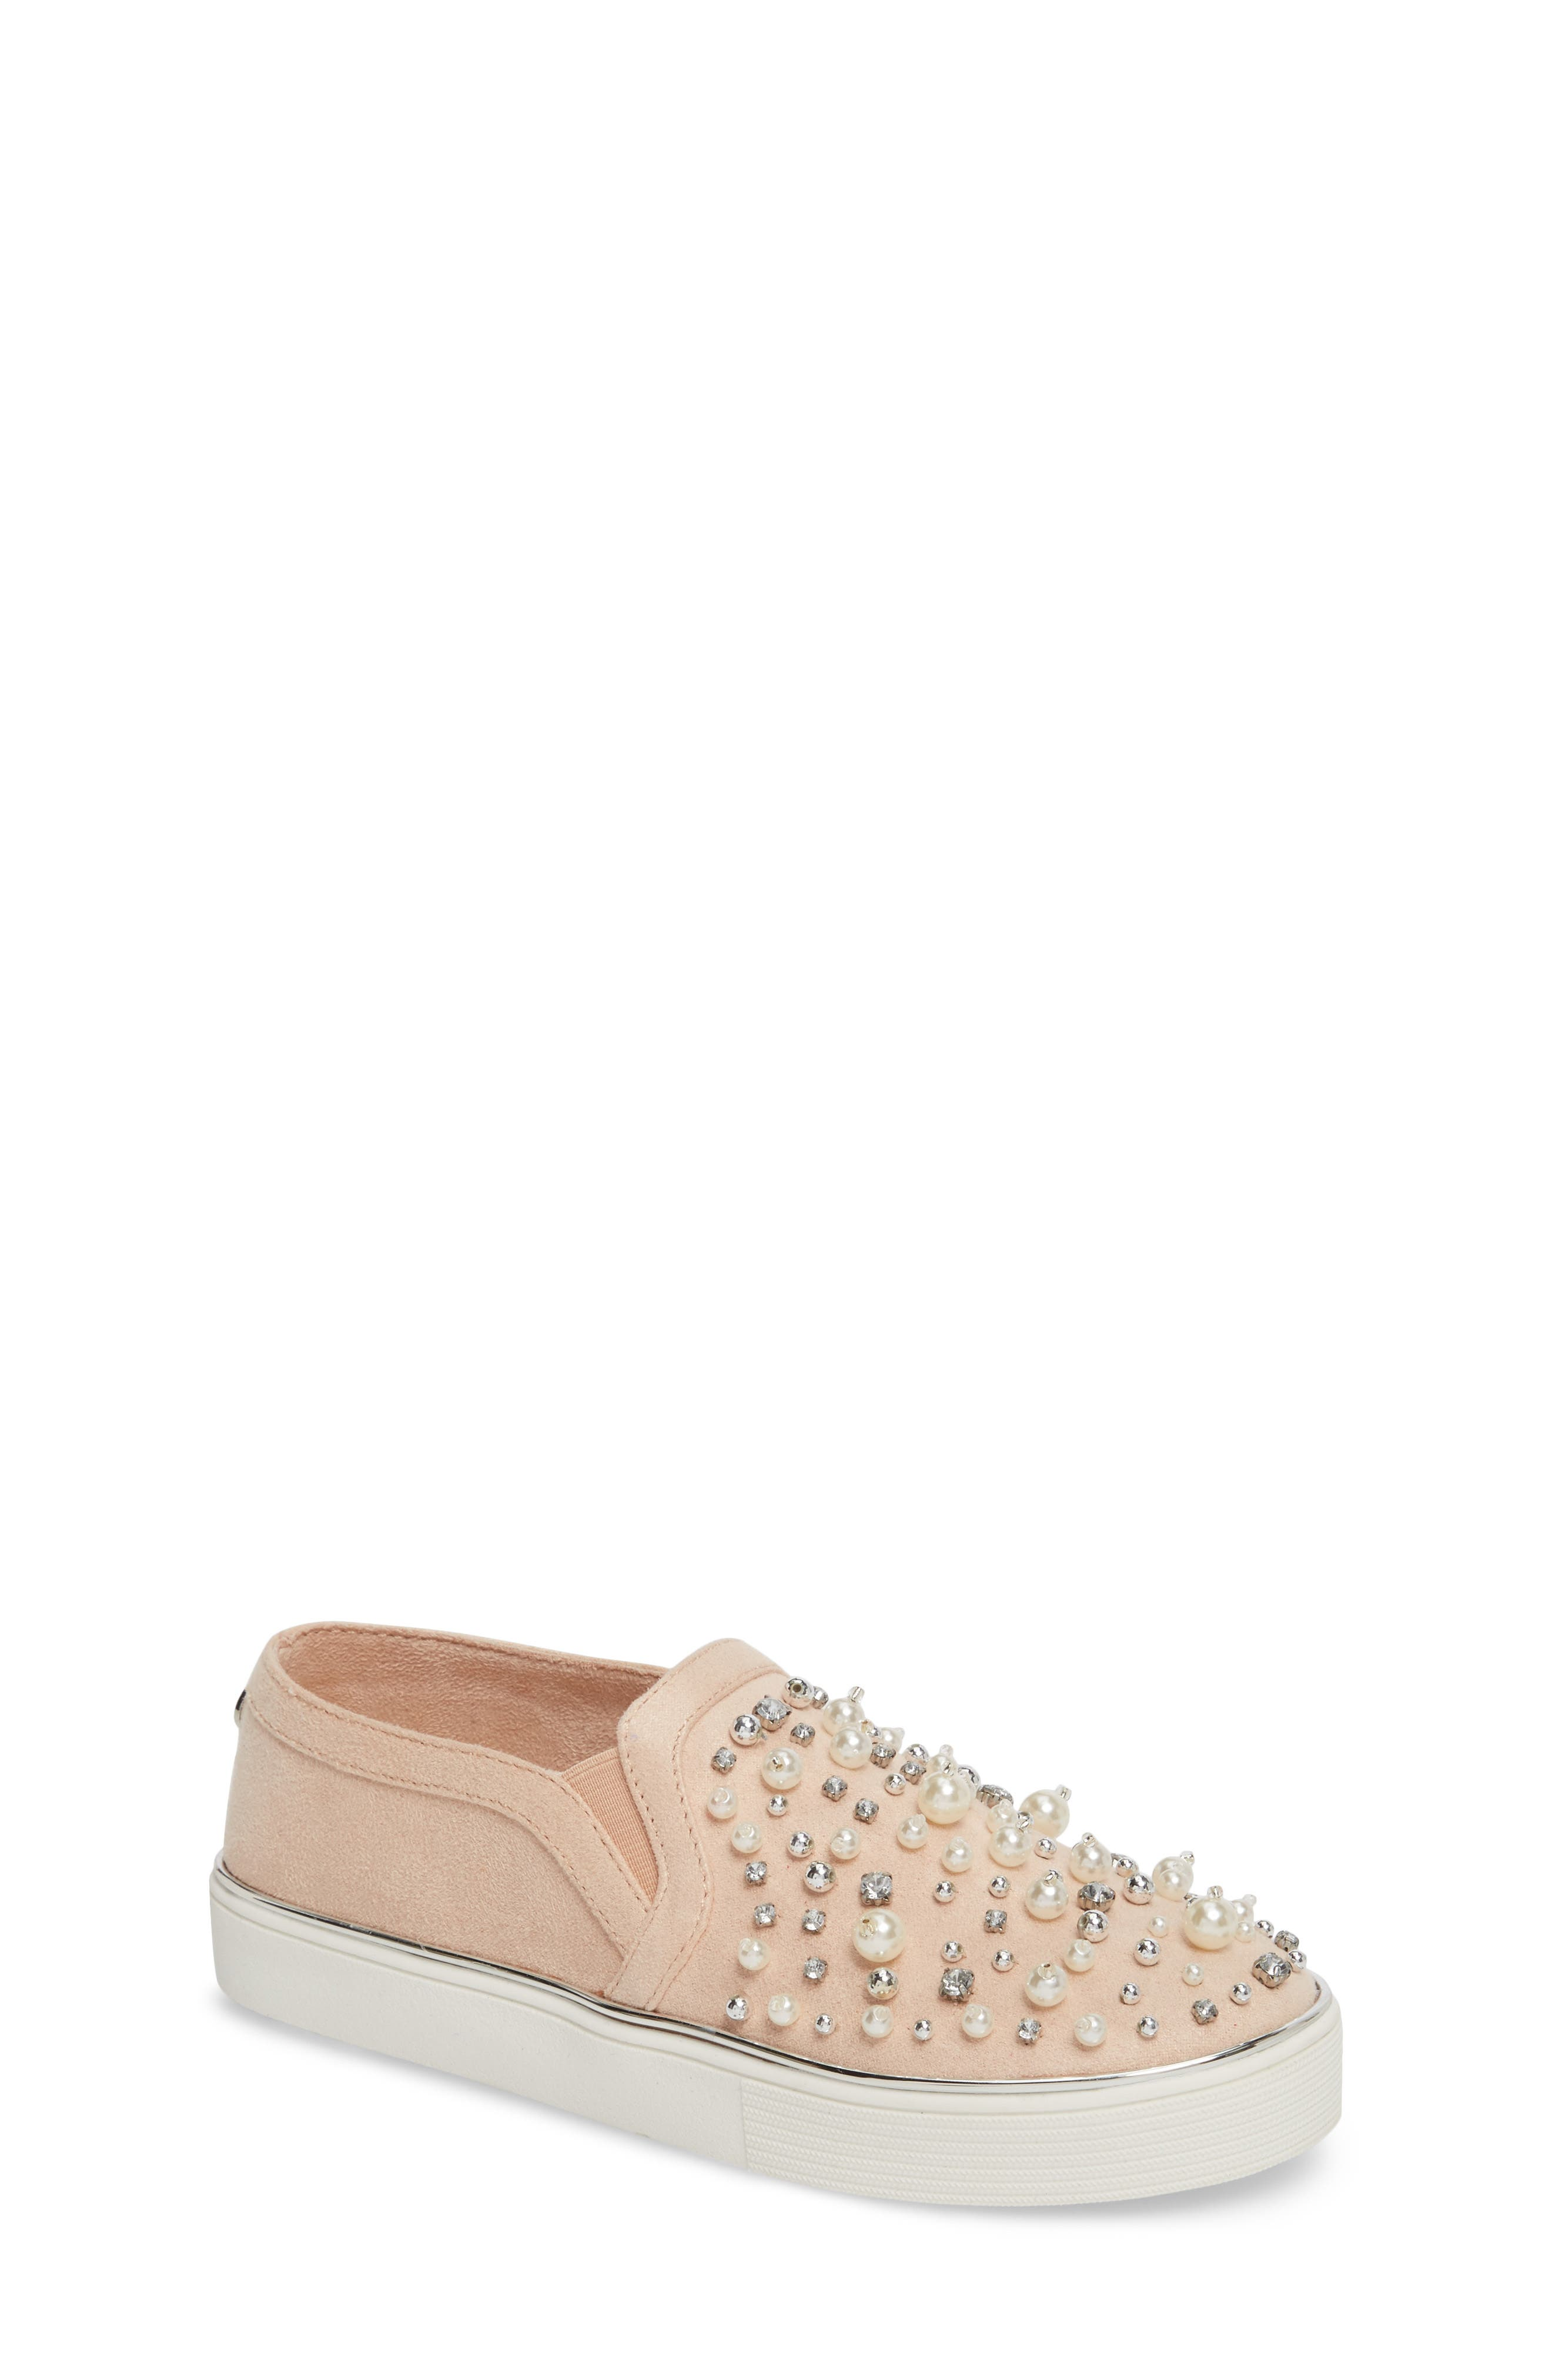 Stuart Weitzman Vance Glitz Embellished Slip-On Sneaker (Toddler, Little Kid & Big Kid)